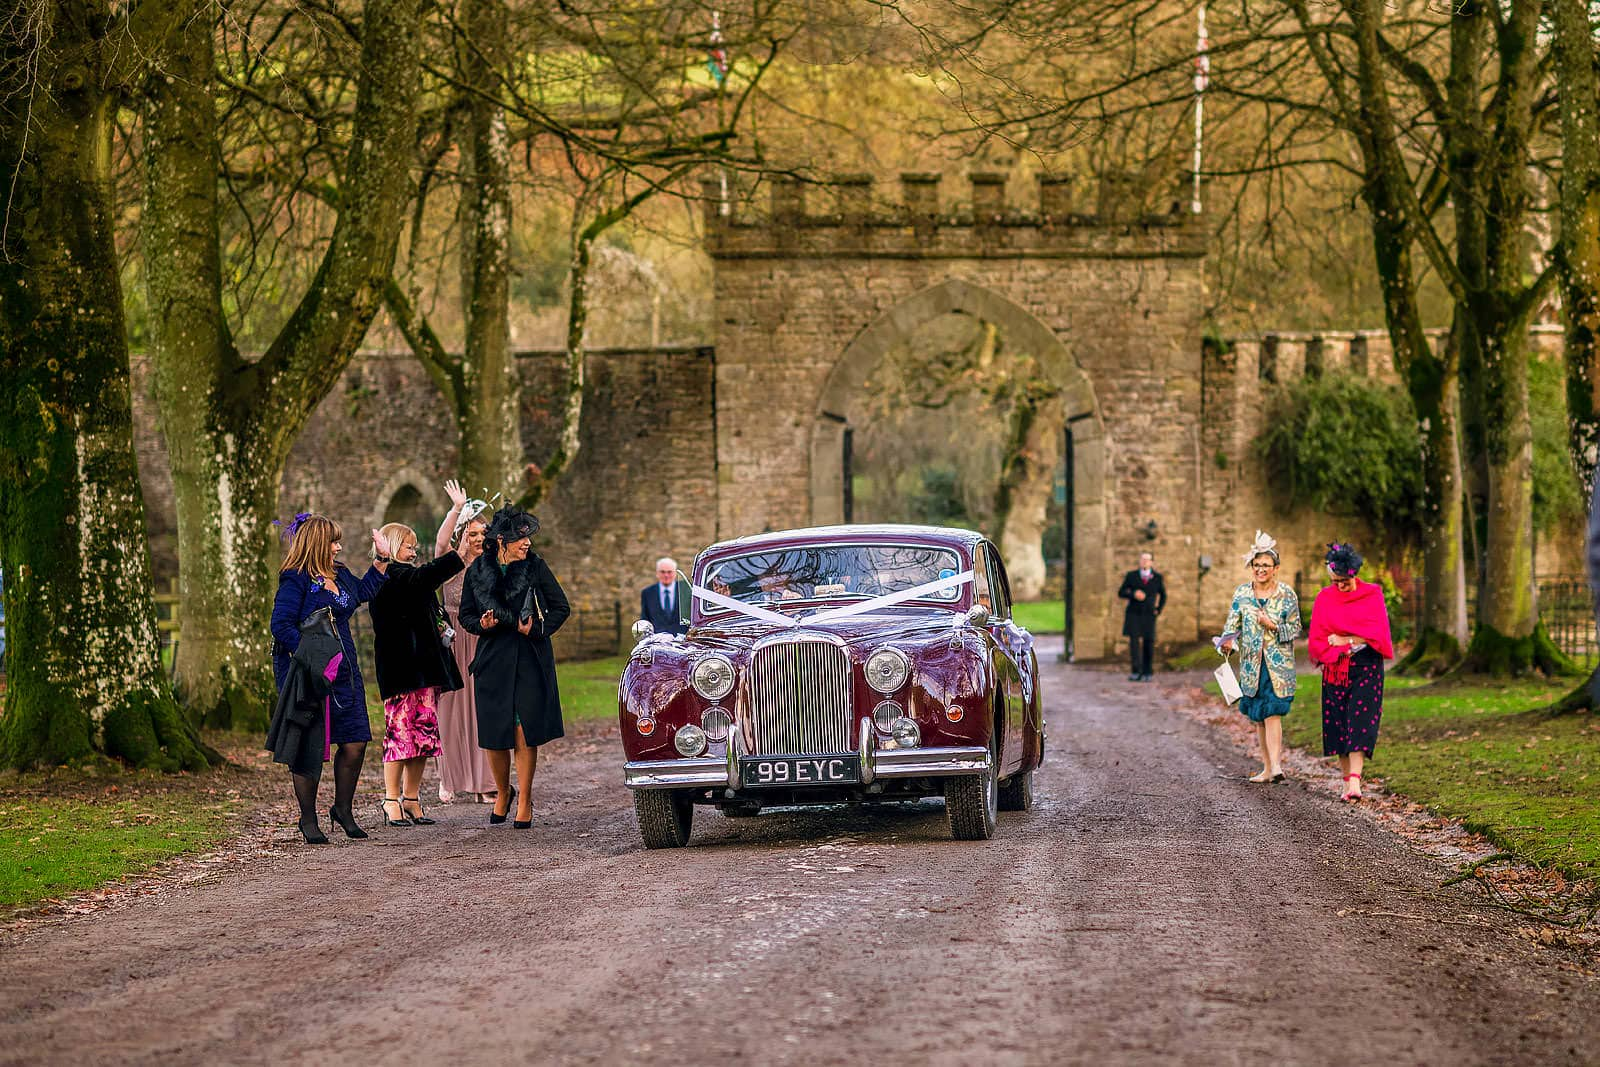 The brdal enters Clearwell Castle in the car